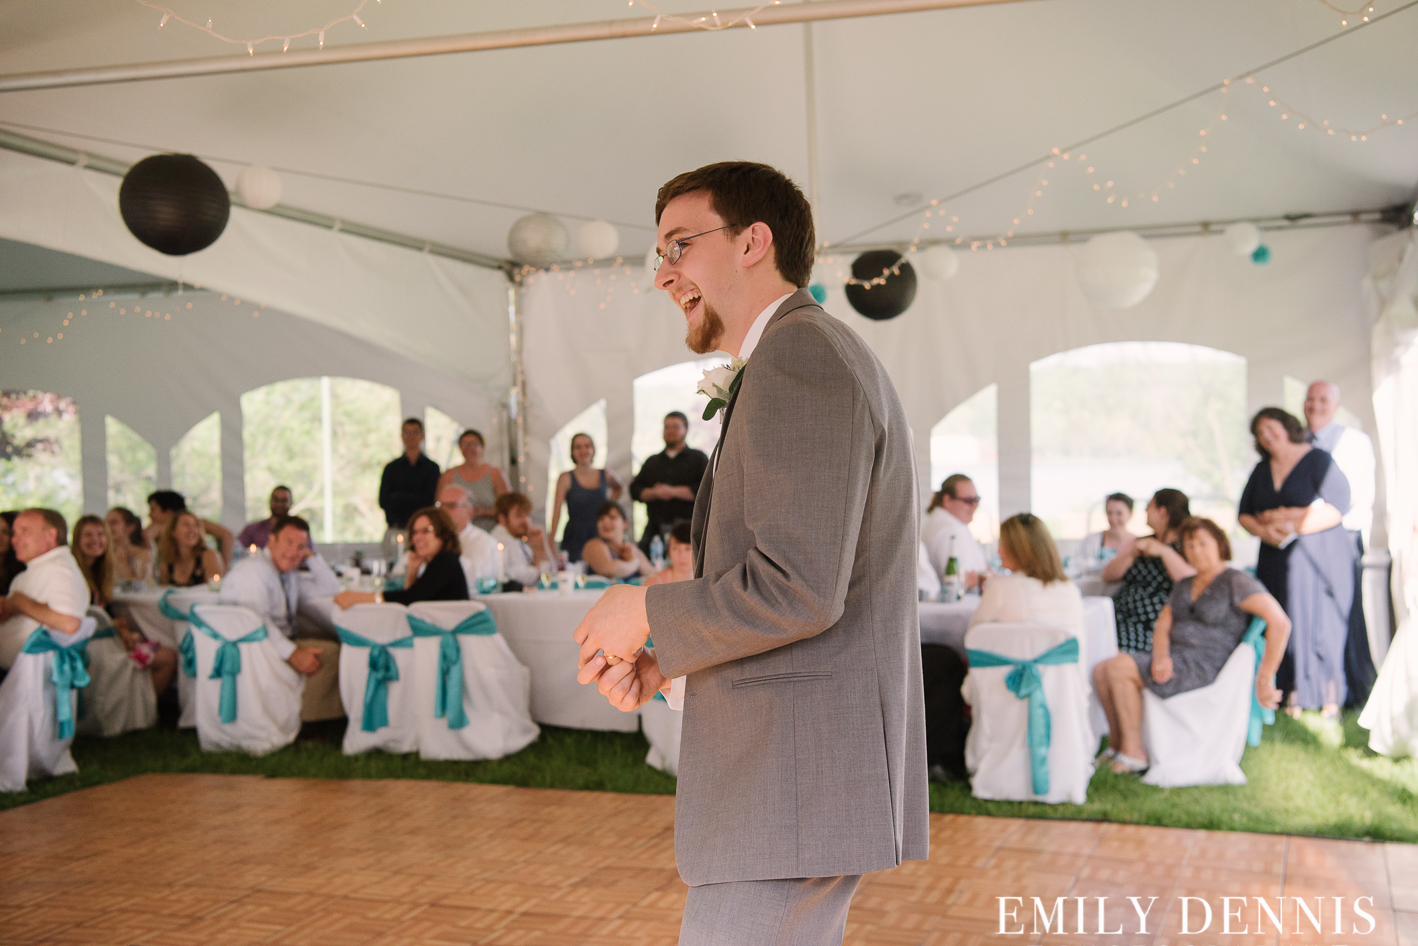 EMILY_DENNIS_PHOTOGRAPHY-111